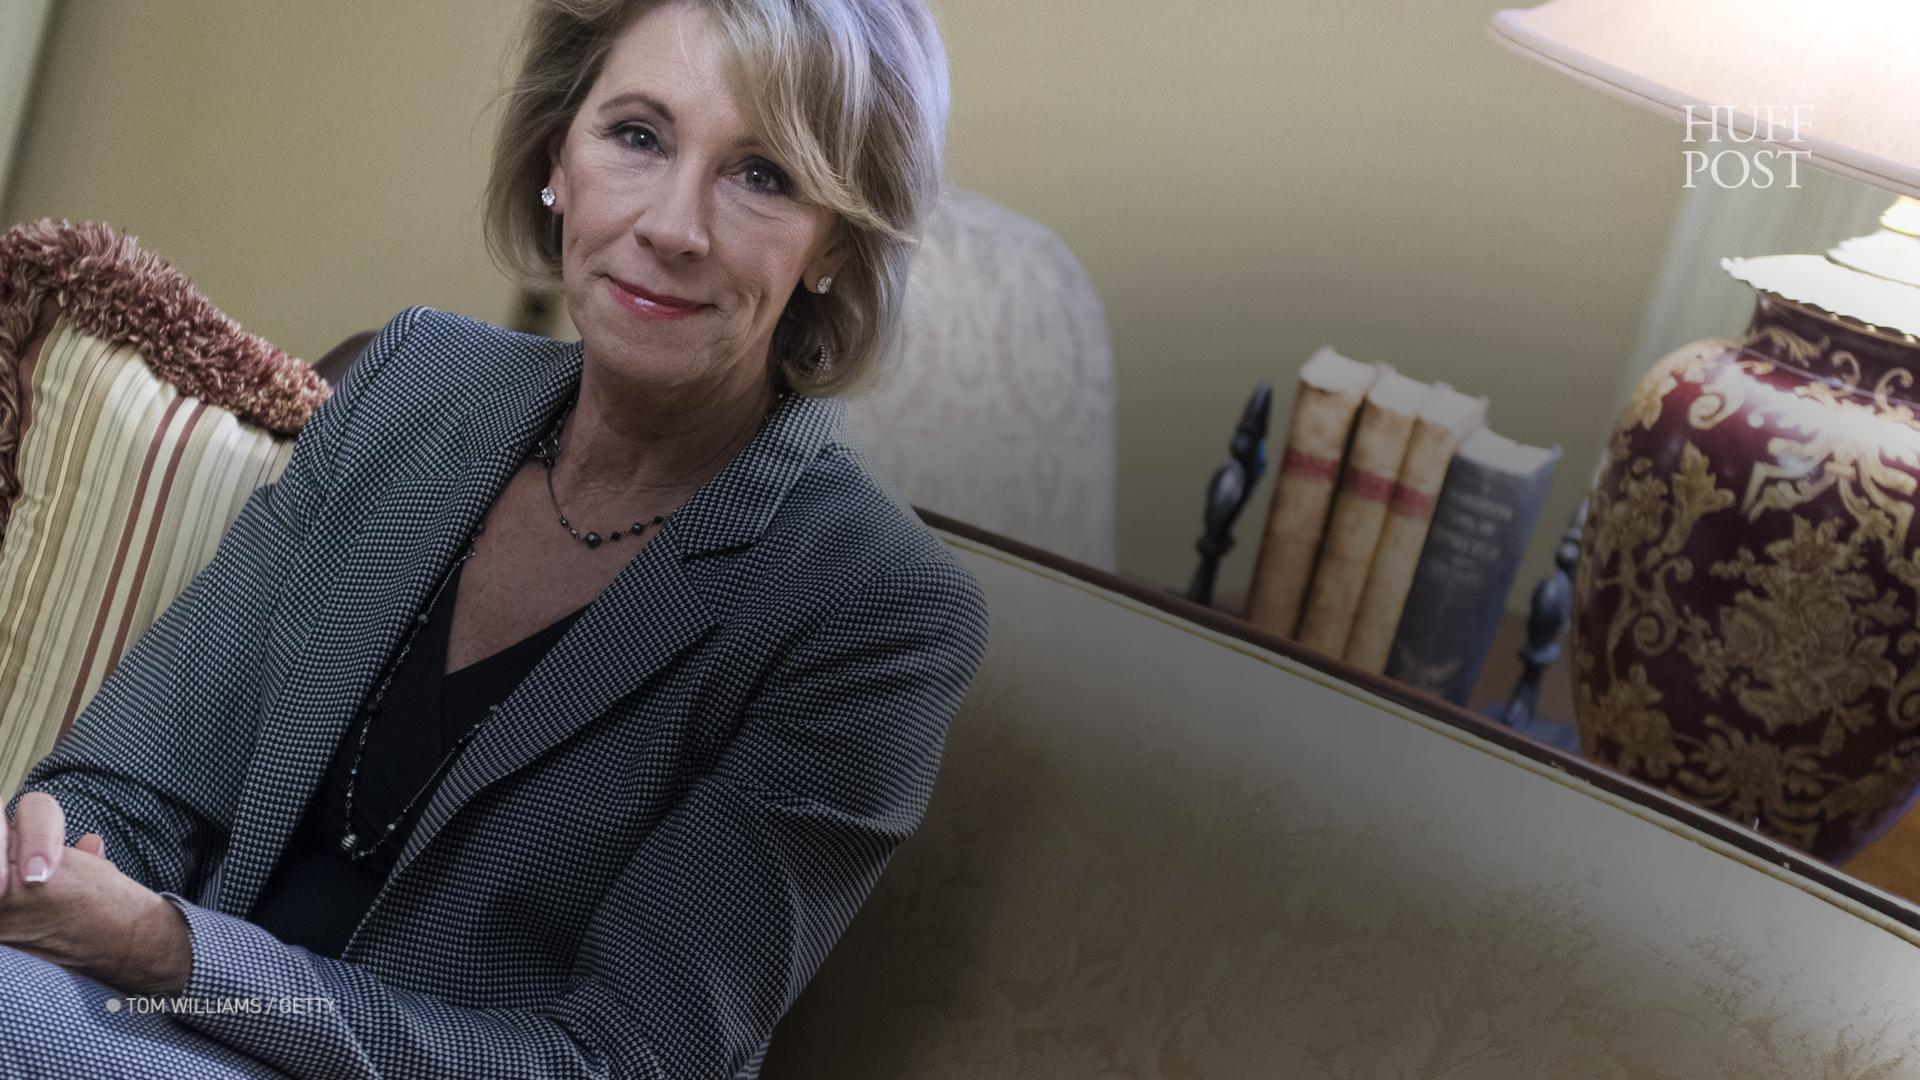 OK, Betsy DeVos Is Now Education Secretary, But The Fight Over Her Agenda Has Just Begun